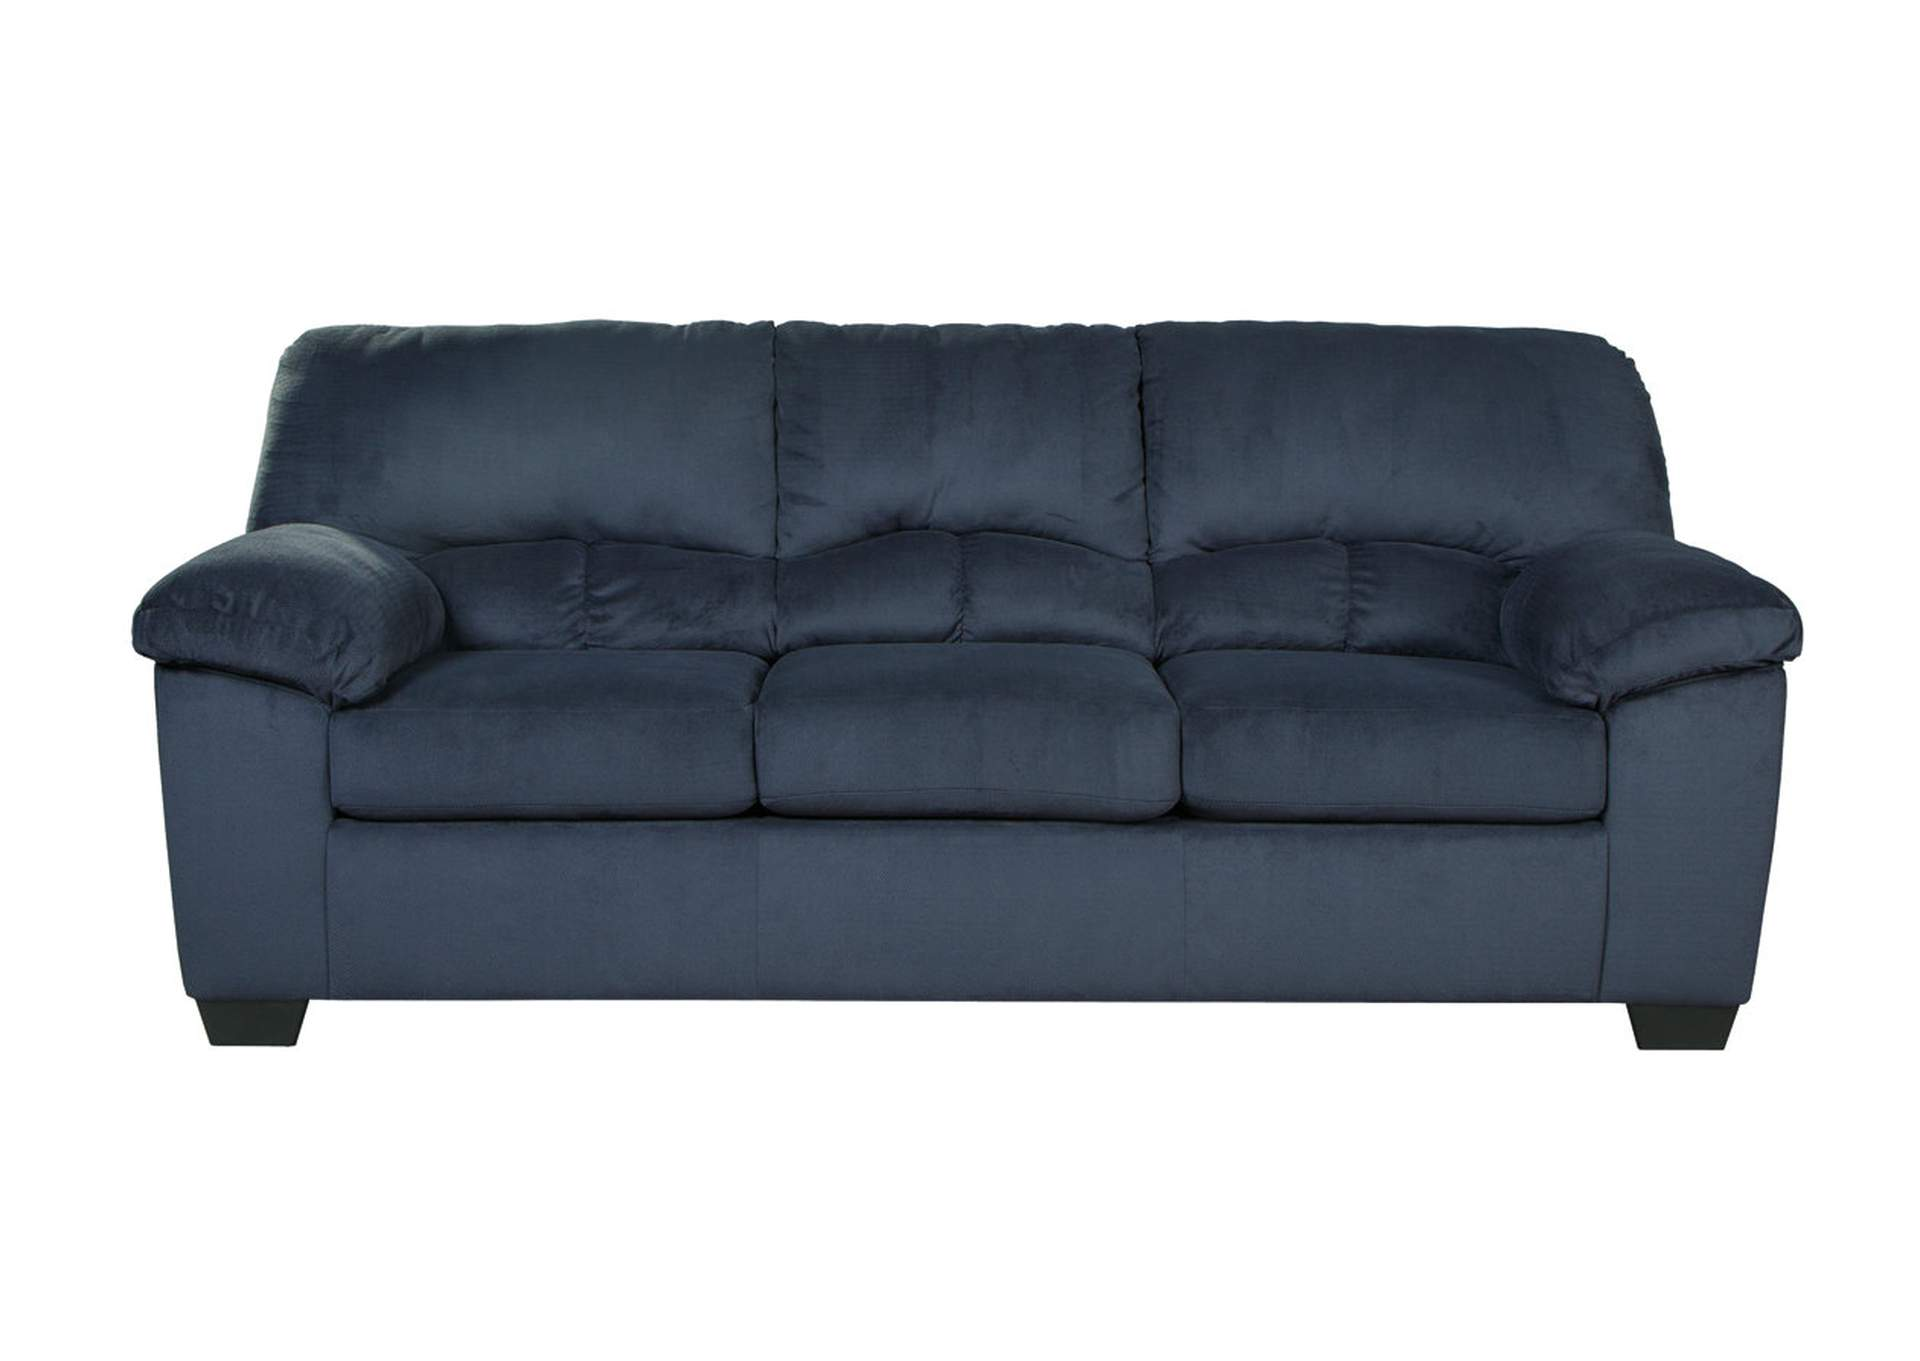 Dailey Midnight Sofa,Signature Design By Ashley